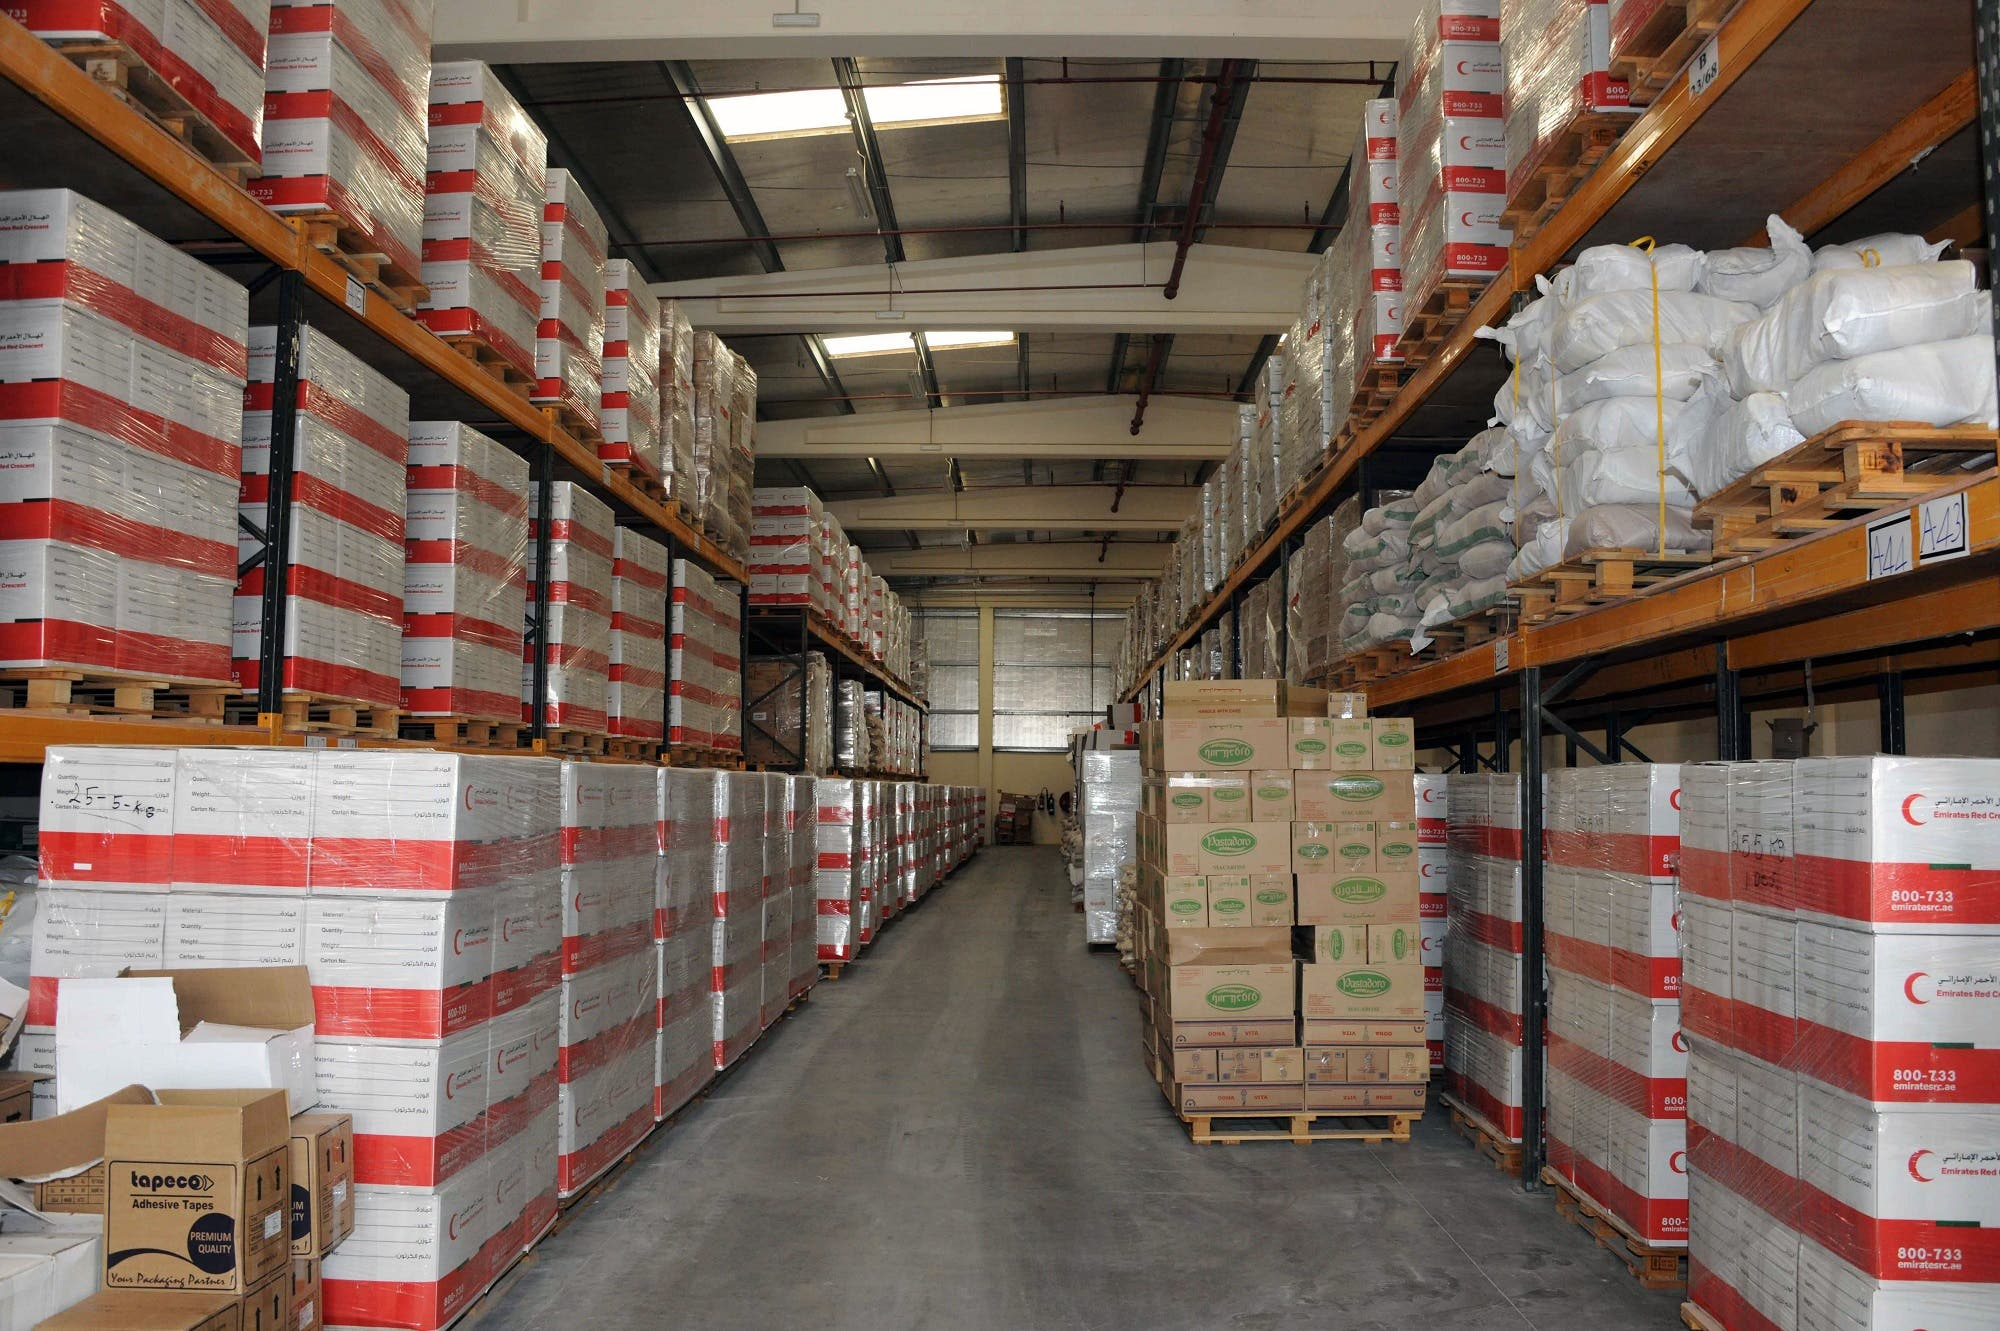 A handout image released by WAM on March 30, 2016 shows boxes of humanitarian aid stacked at a warehouse near the Emirates Red Crescent headquarters in Abu Dhabi, ahead of being transported residents in the war-torn Libyan city of Benghazi. (AFP)